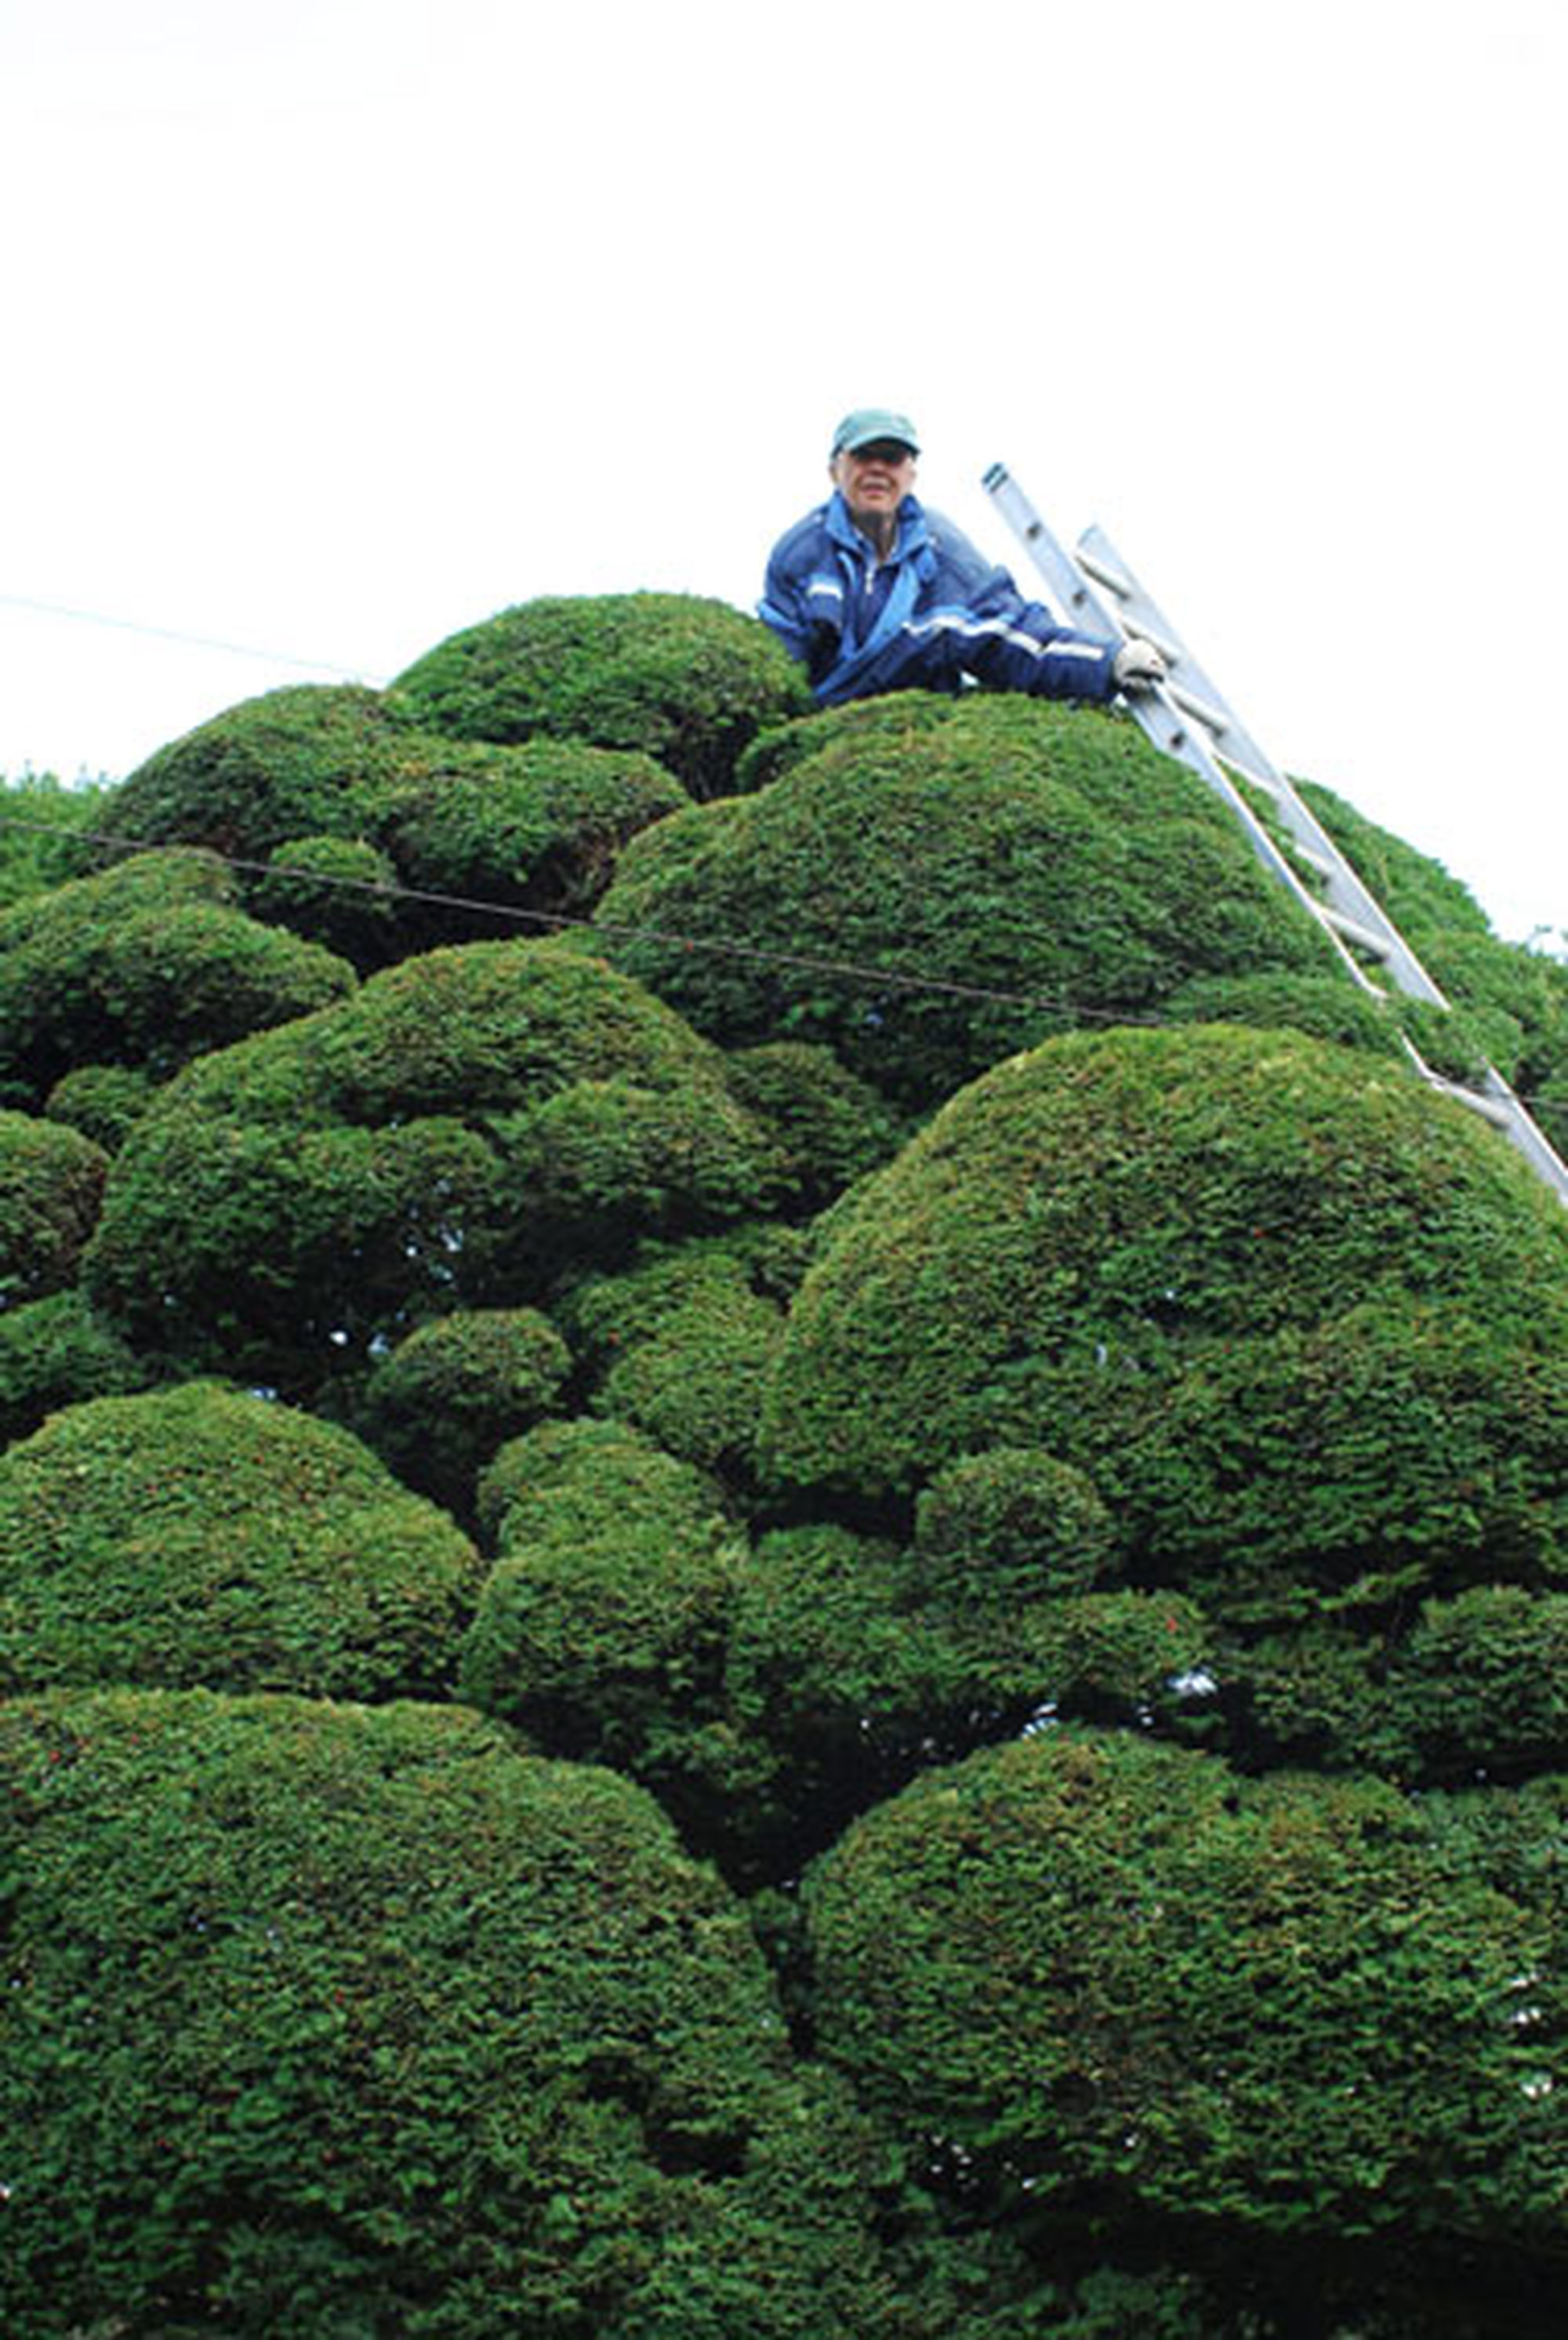 Ladders For Sale >> Niwaki - The Most Amazing Yew Tree